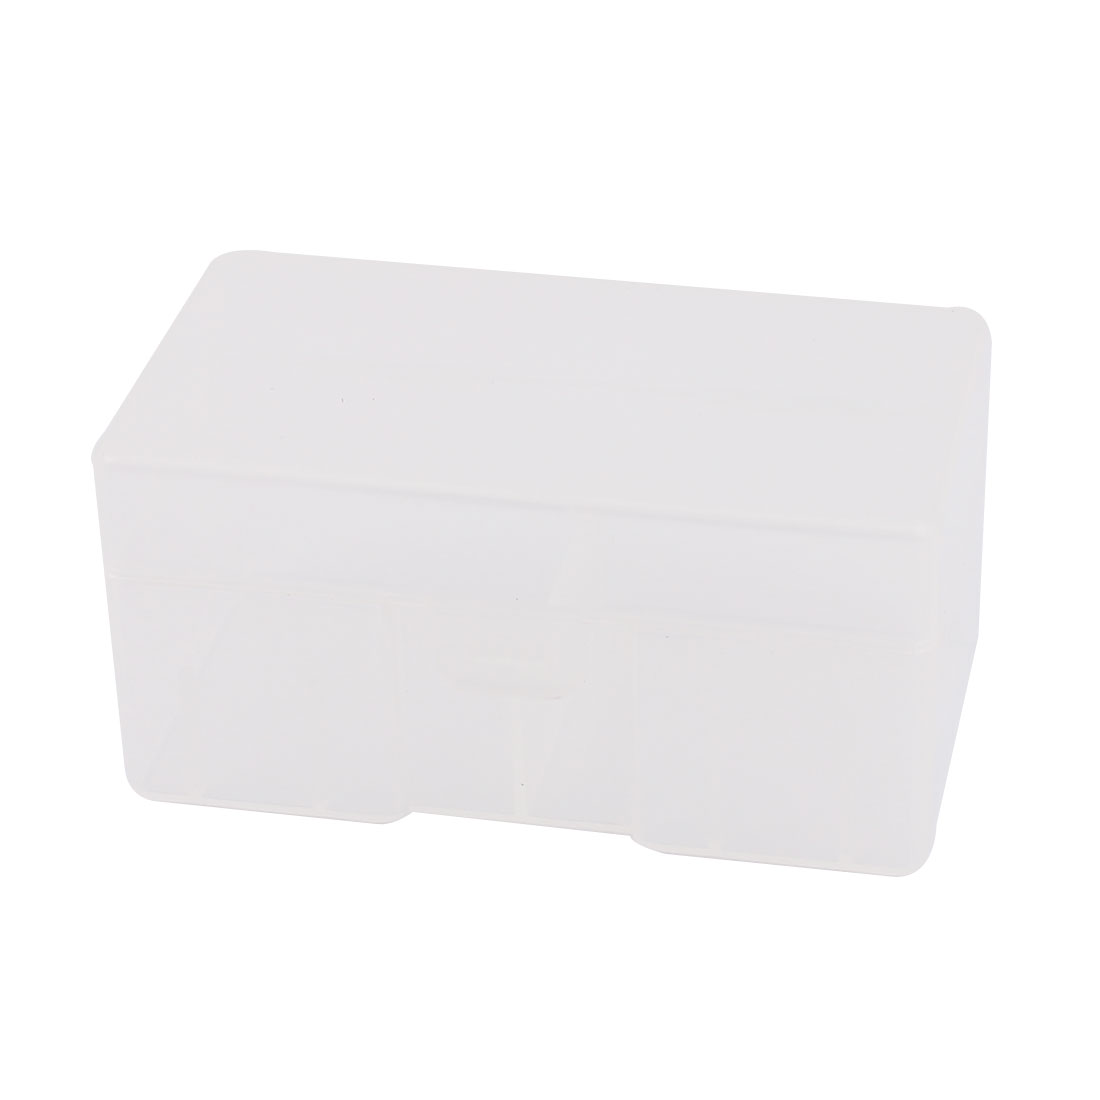 Clear Plastic Rectangle Storage Box Case Container Holder for 12 x 9V Battery